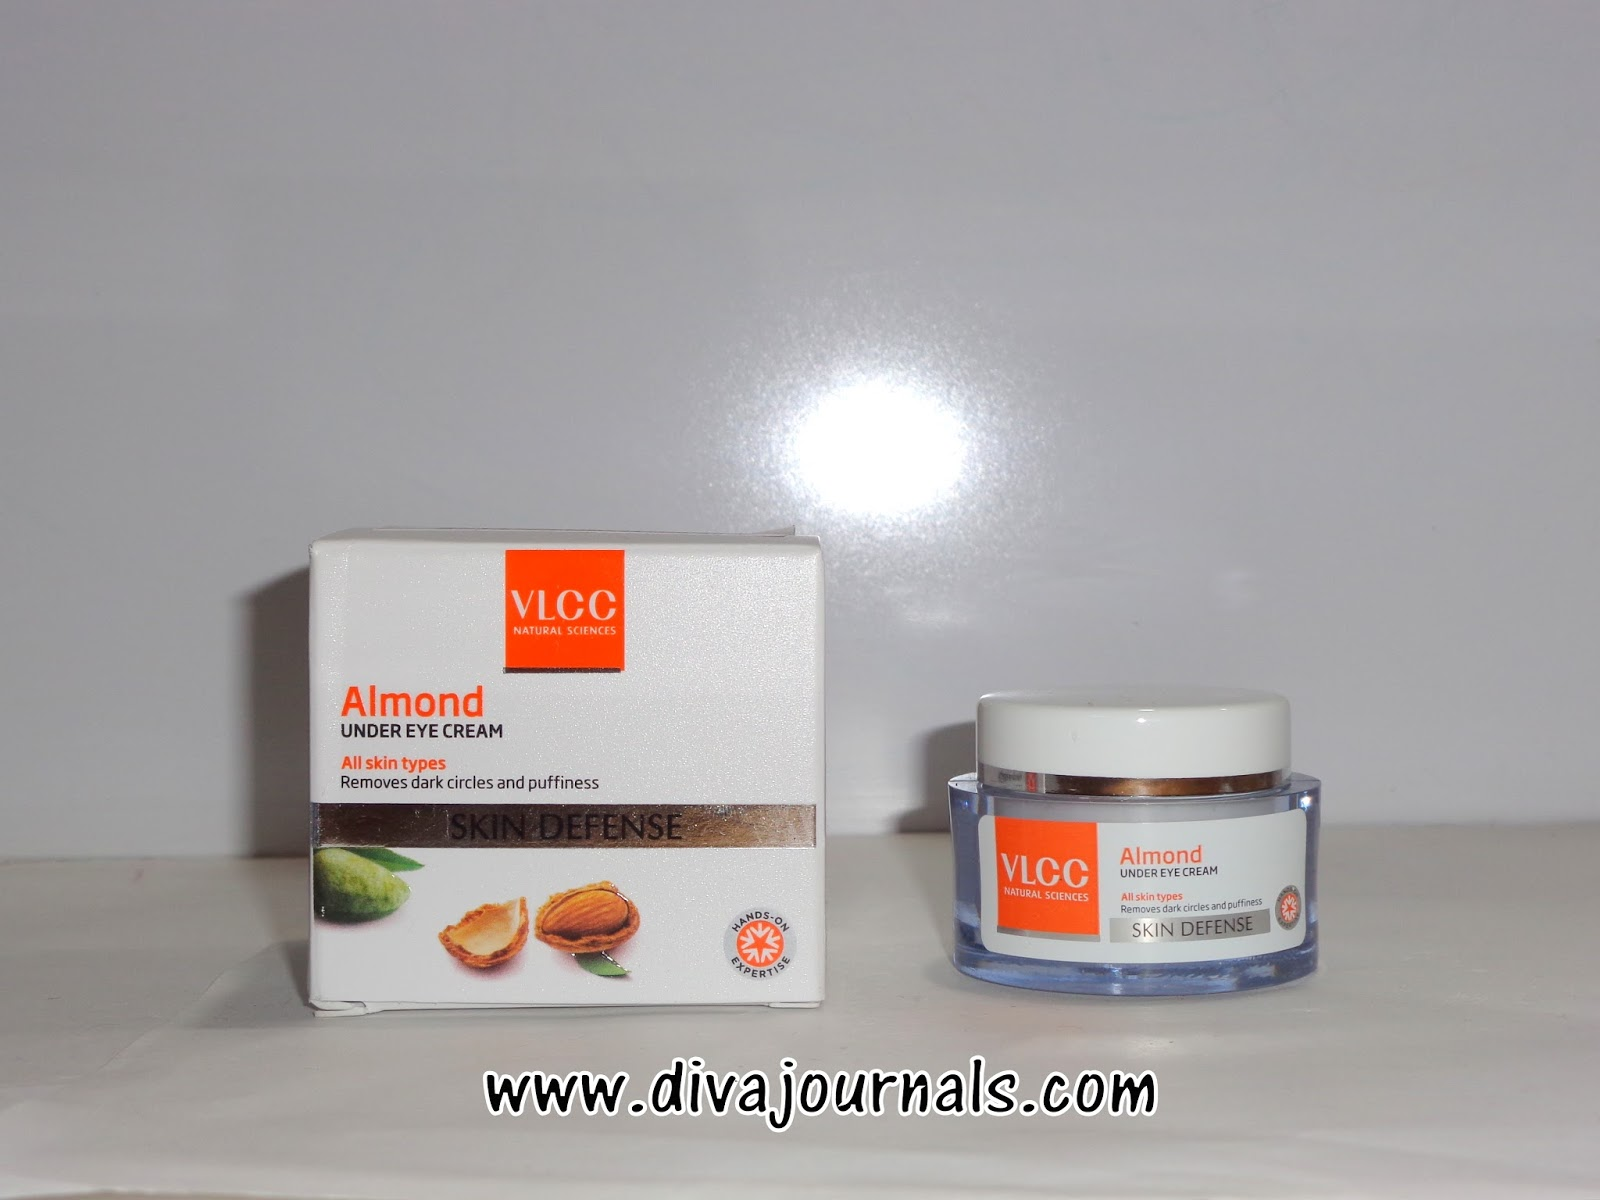 VLCC Skin Defense Almond Under Eye Cream Review